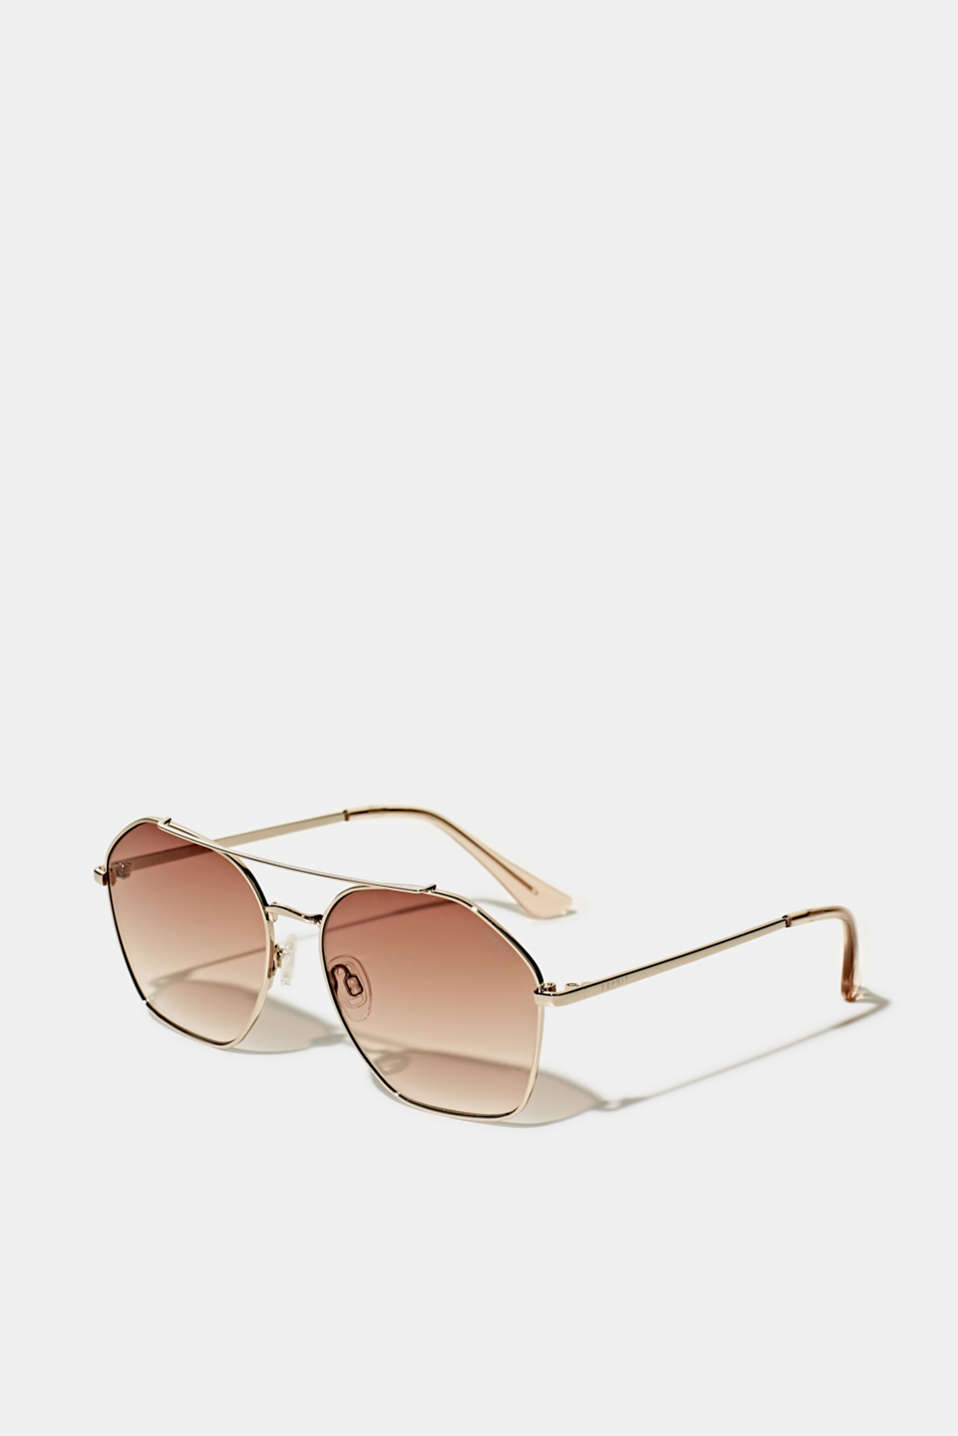 Sunglasses with metal frame, LCBROWN, detail image number 0